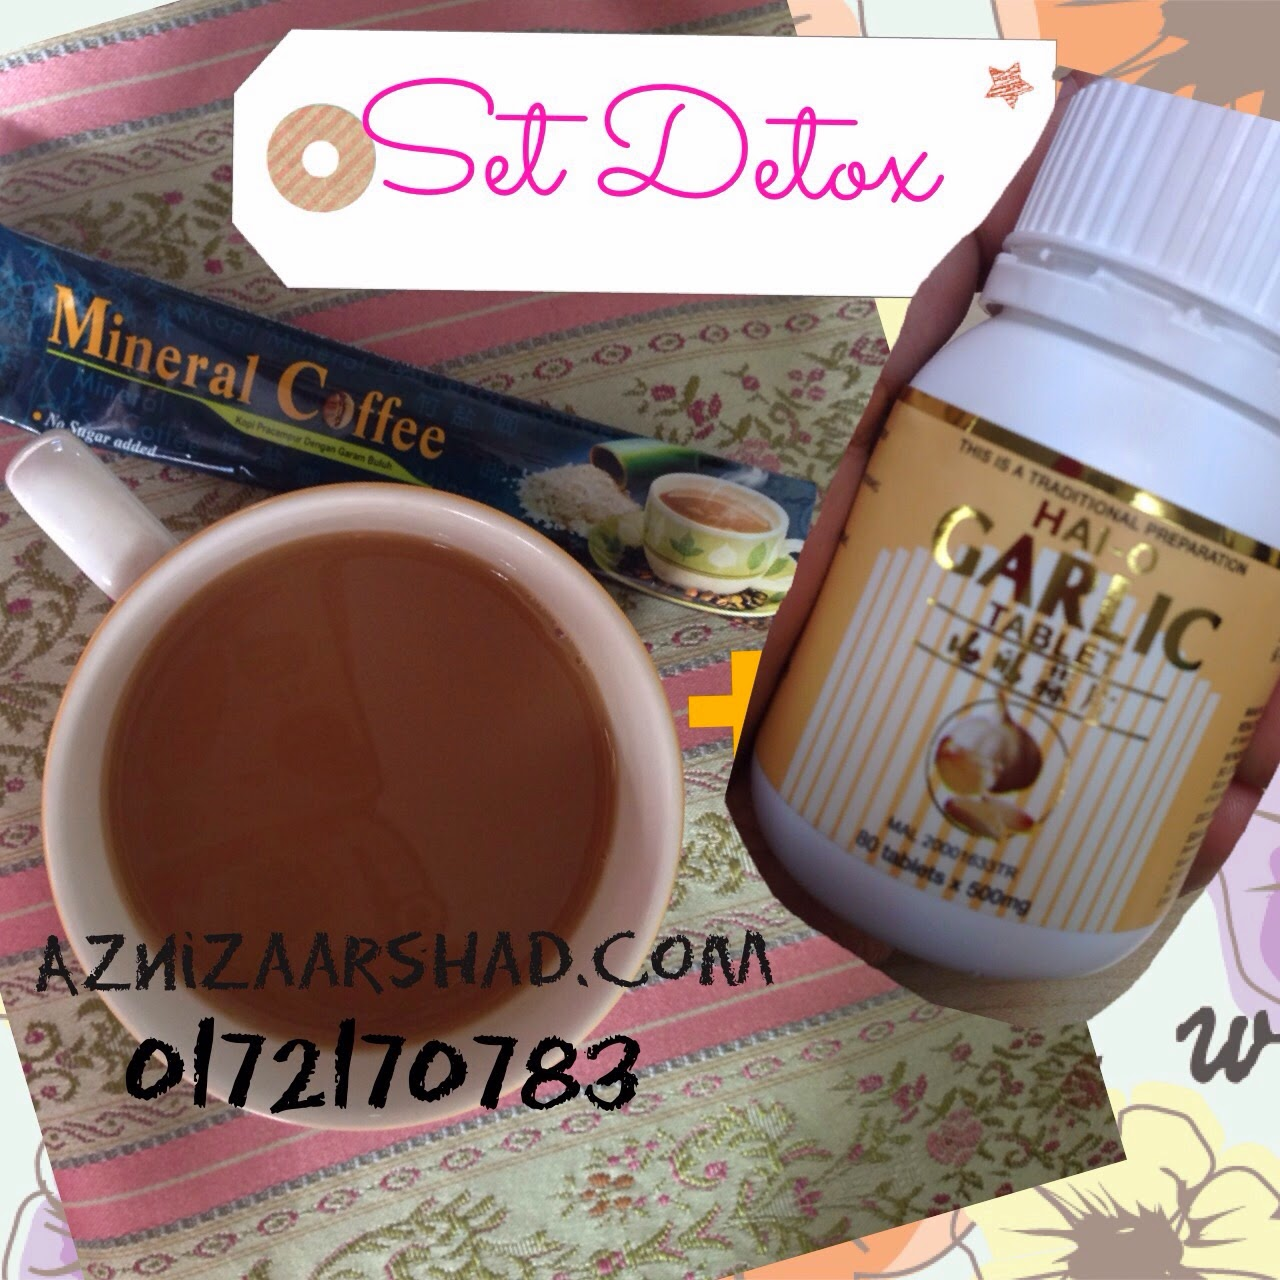 Set detox, Set mineral coffee dan garlic, HaiO garlic, mineral coffee, set kurus bajet